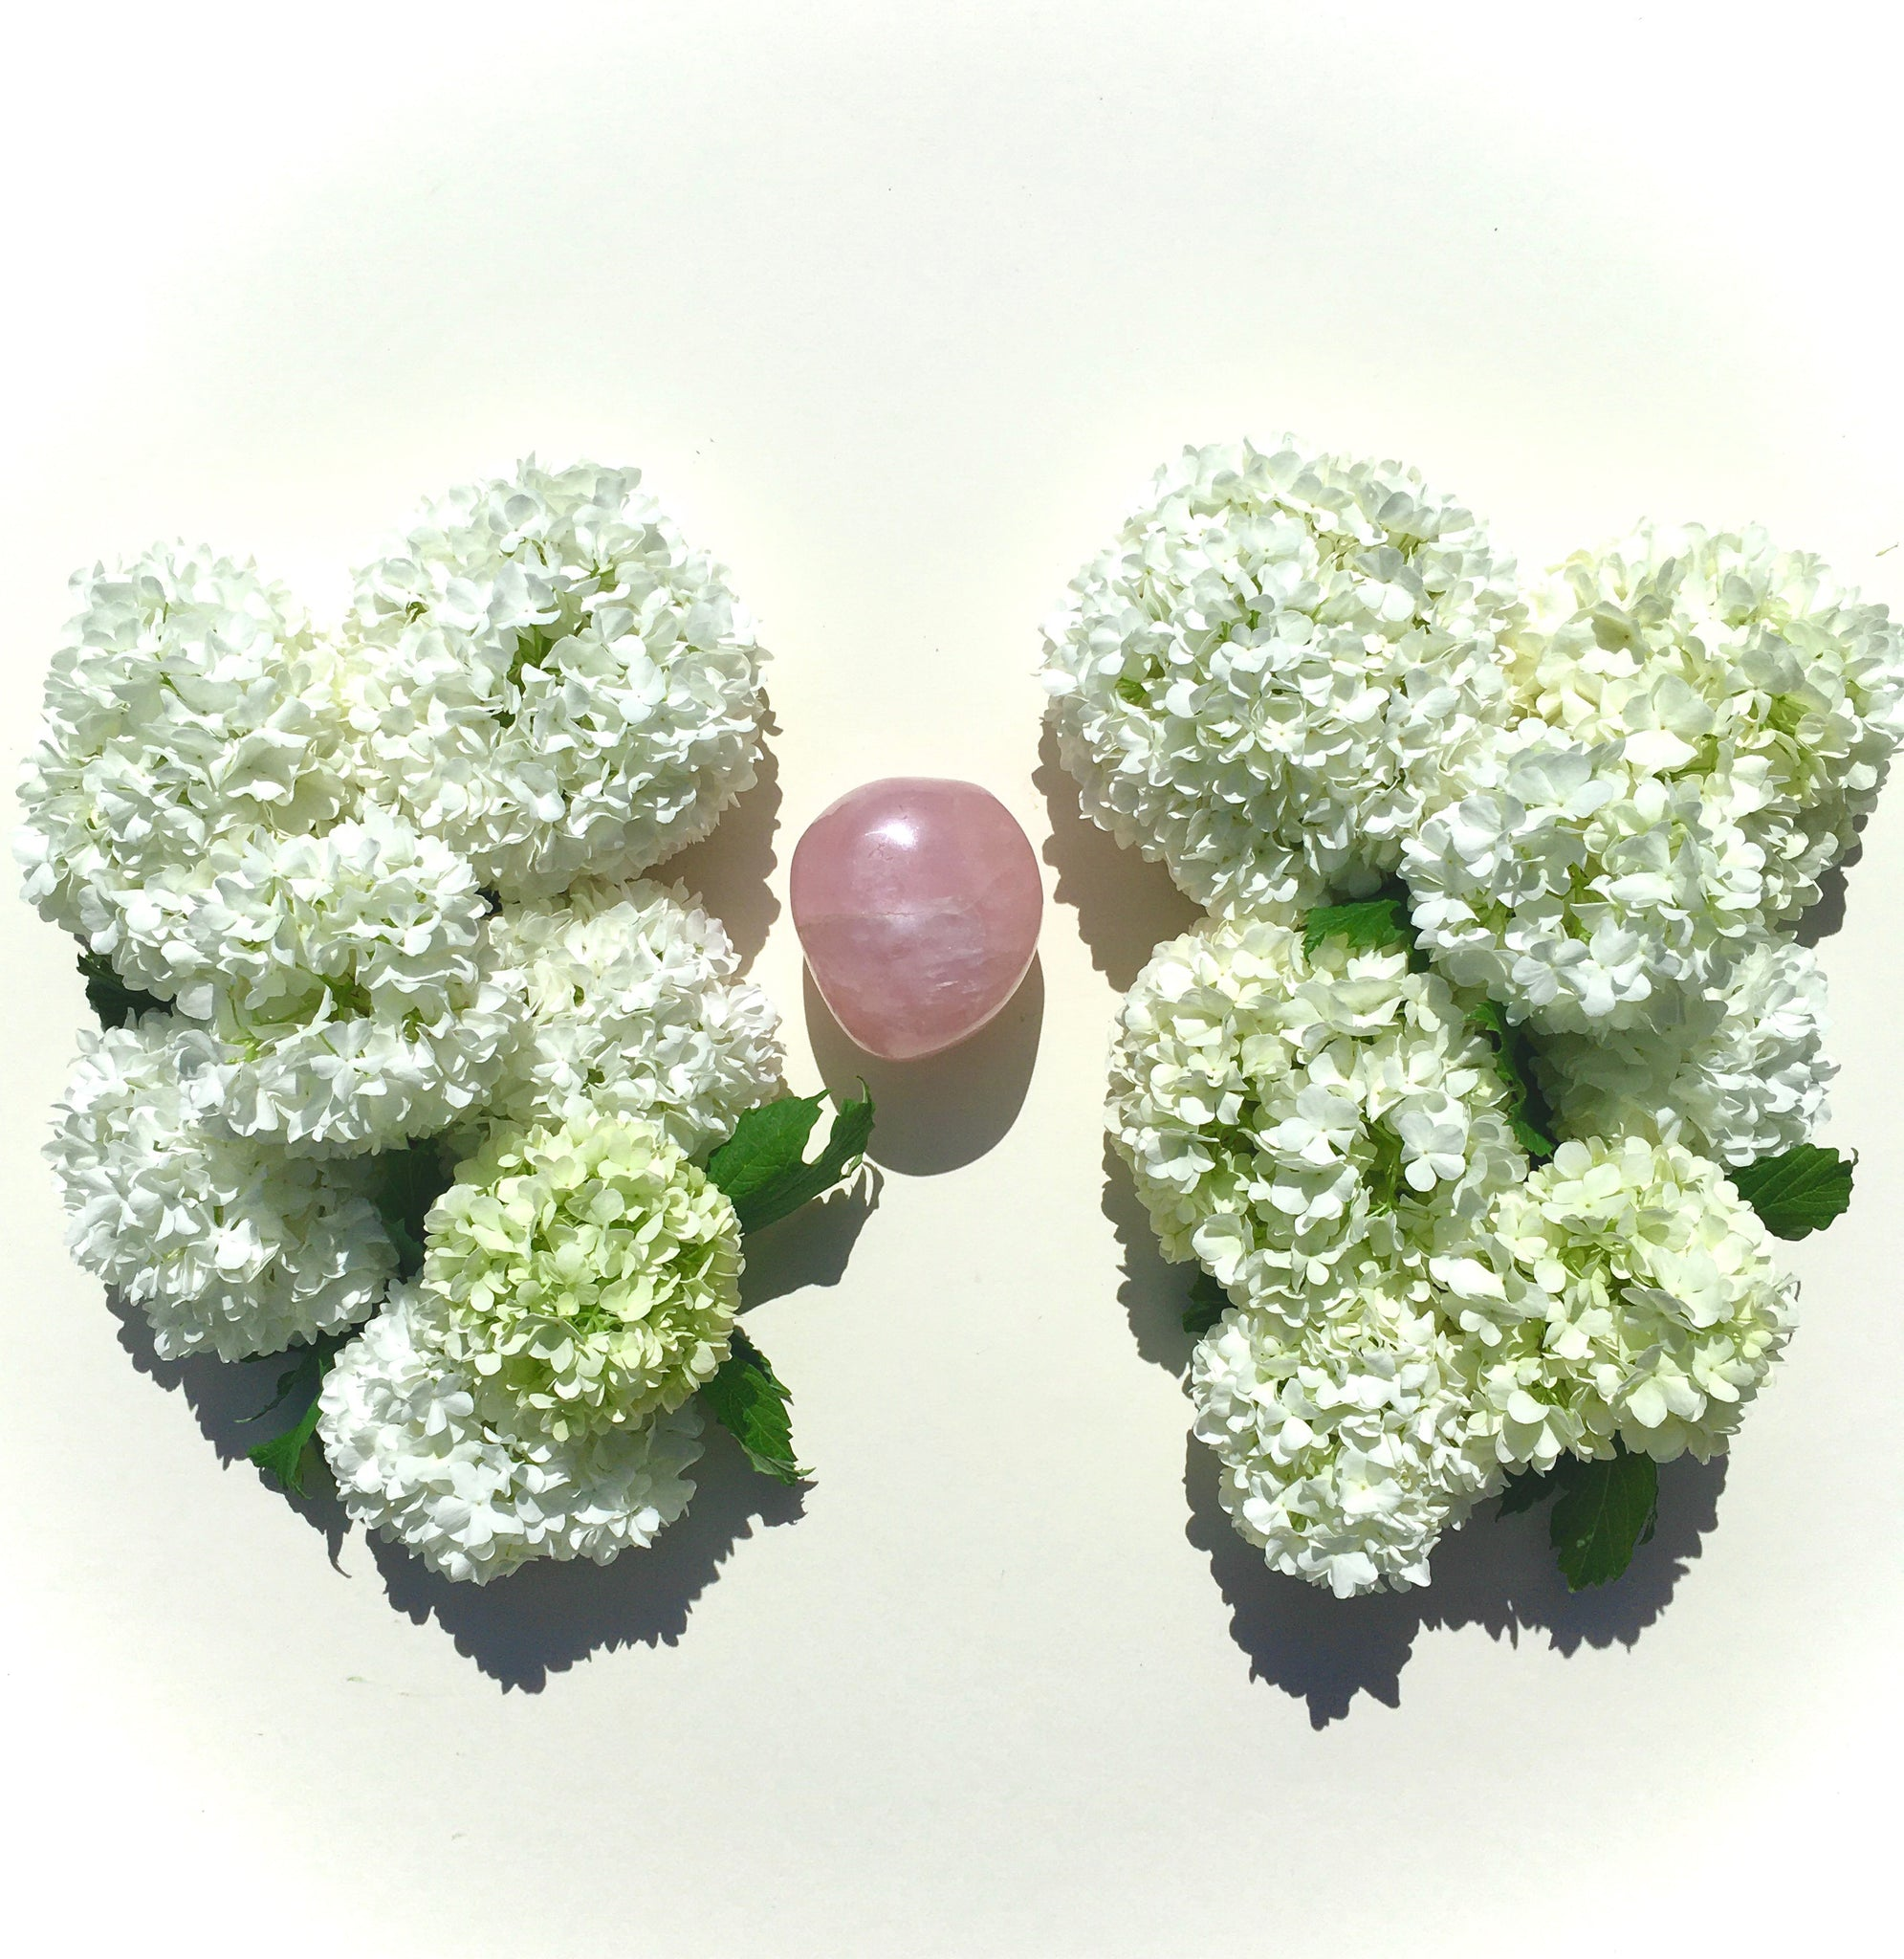 Fluffy round blooms of Vibernum flowers, playfully piled together to look like lungs around a rose quartz heart.